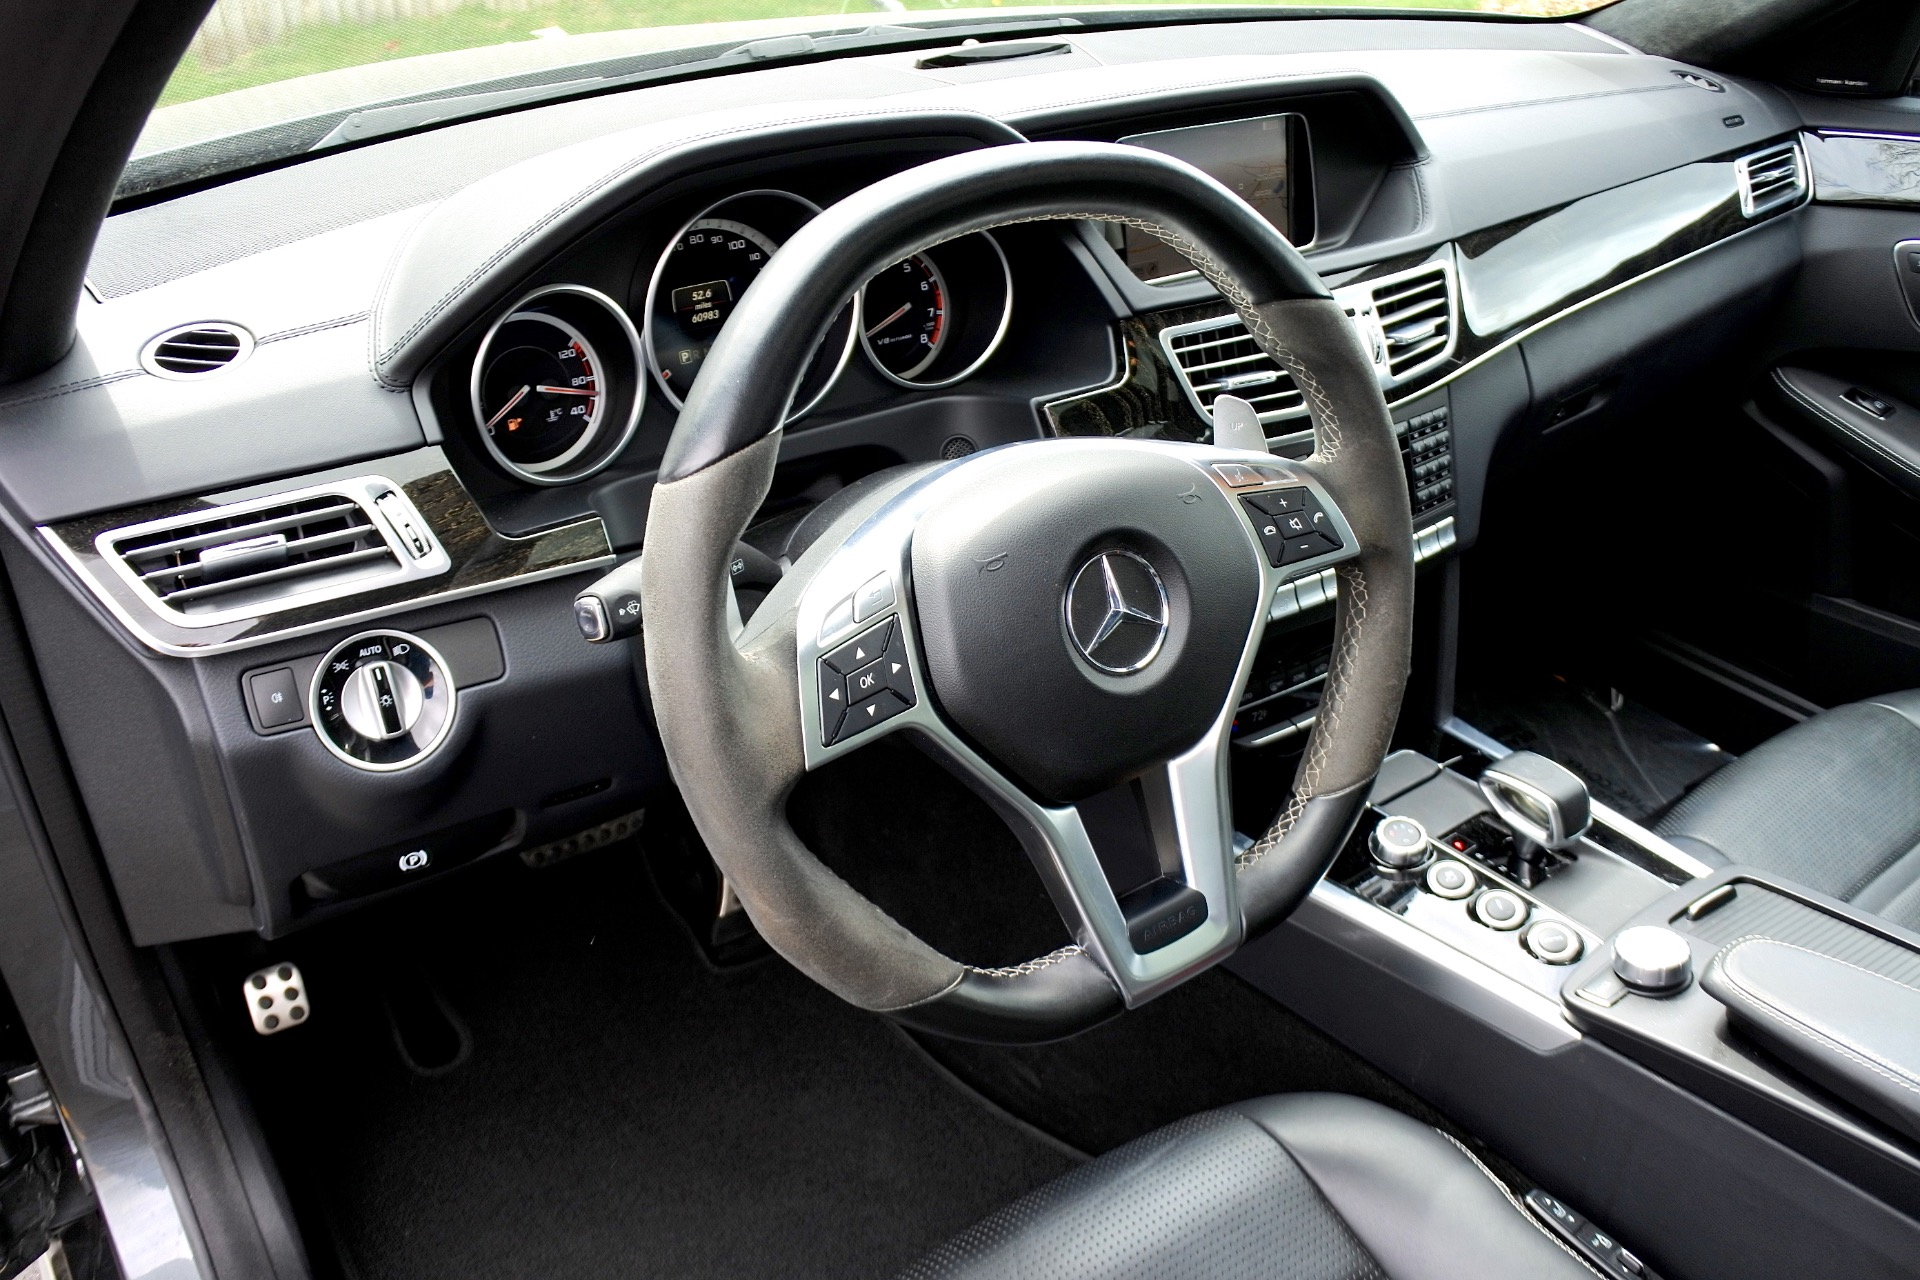 Used 2014 Mercedes-Benz E-class E63 S AMG Wagon 4MATIC Used 2014 Mercedes-Benz E-class E63 S AMG Wagon 4MATIC for sale  at Metro West Motorcars LLC in Shrewsbury MA 11